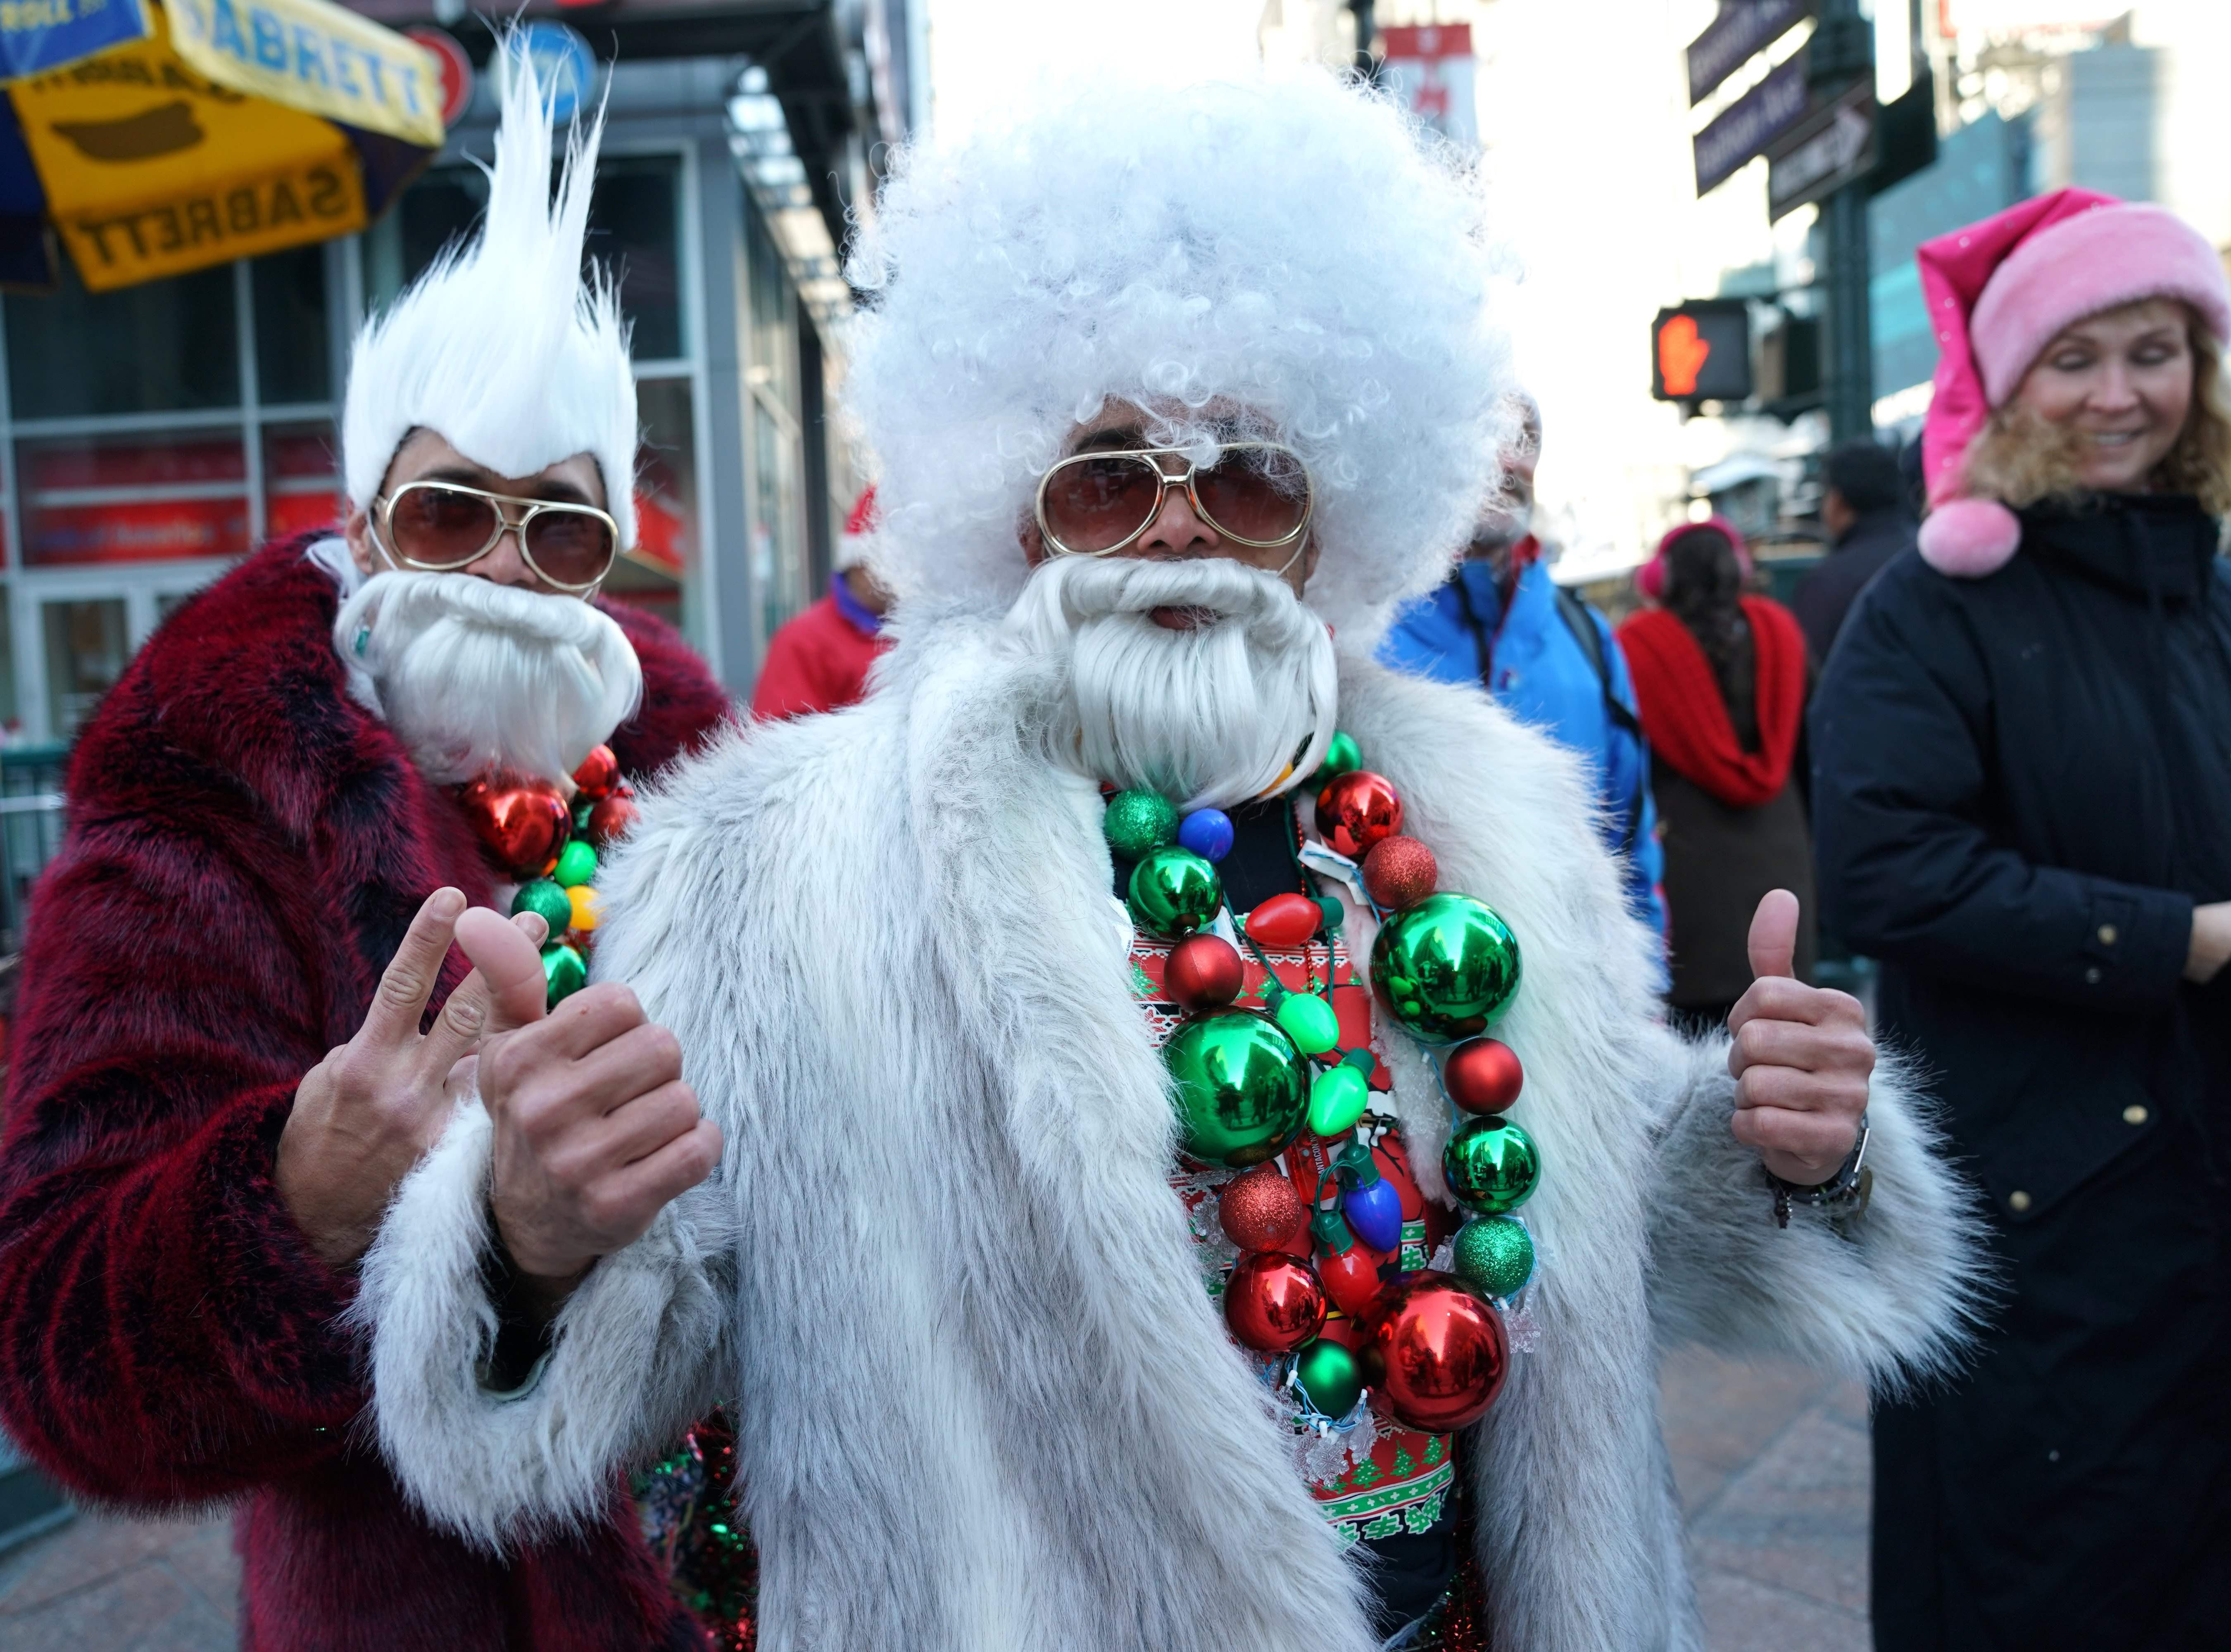 Revelers dressed as Santa Claus or in festive costumes  arrive for the start of SantaCon 2018 in New York  City Dec. 8, 2018. SantaCon the official Santa pub crawl happens in bars all across the world.